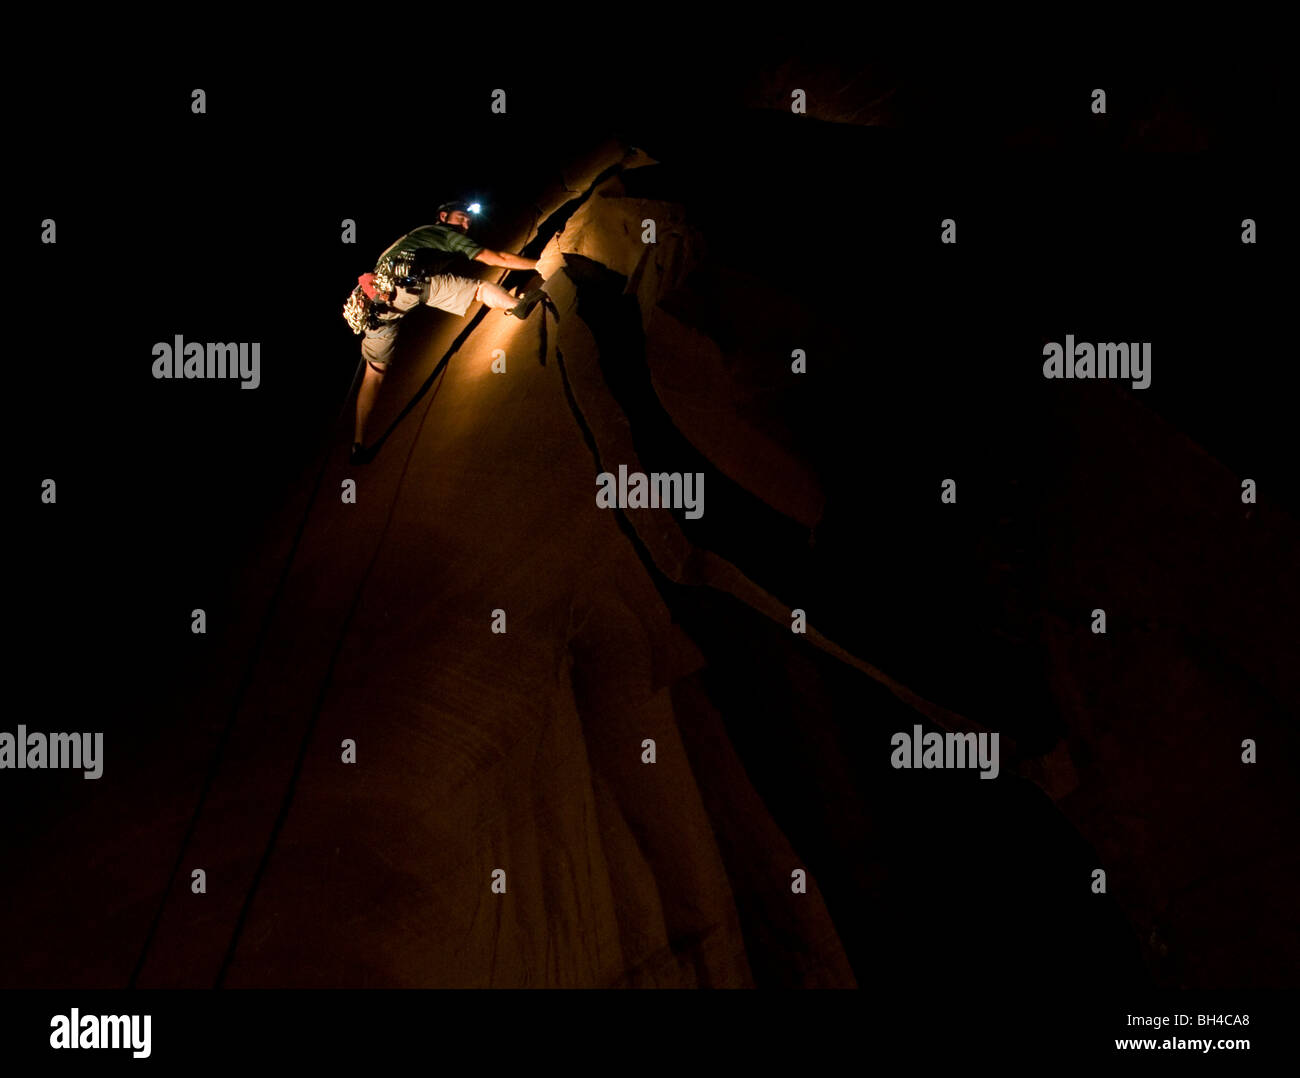 Descending at night, a young man cleans up the trad gear while rock climbing in Moab, Utah. - Stock Image